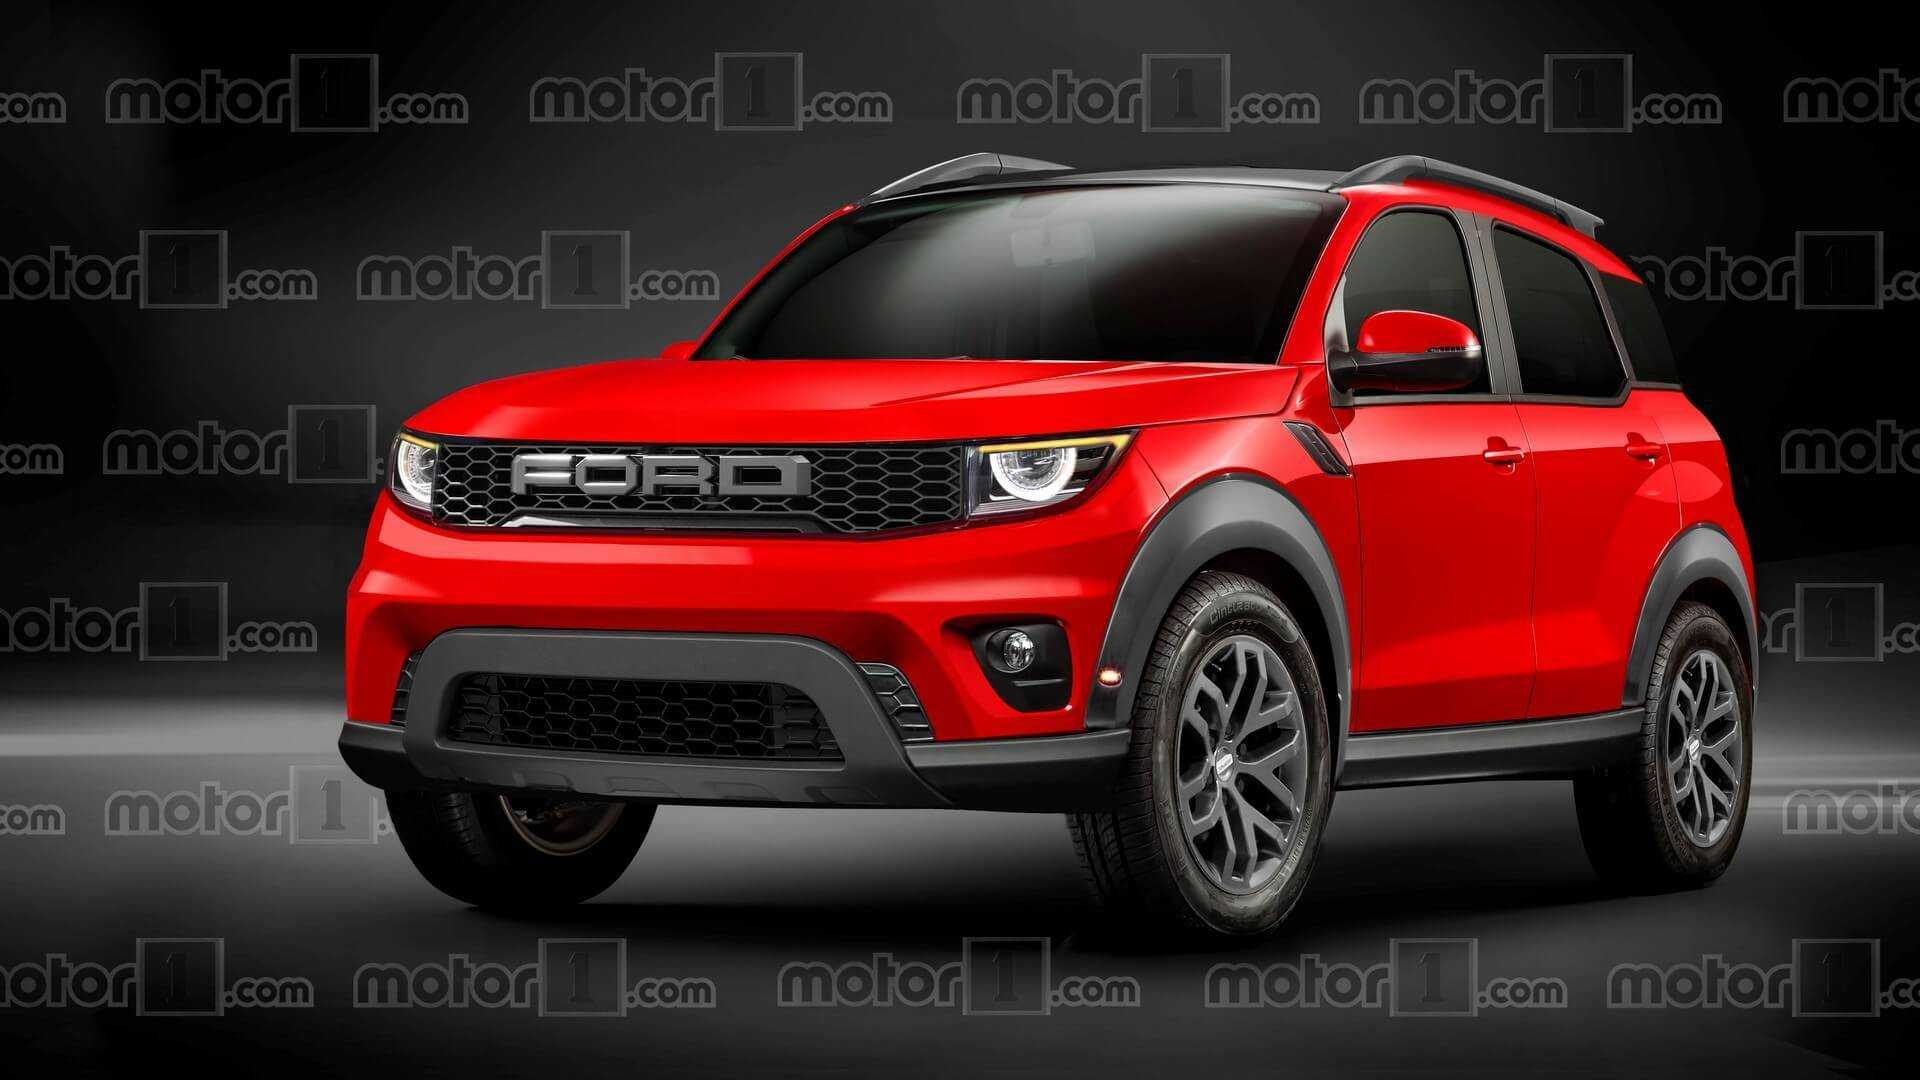 86 Concept of Ford Baby Bronco 2020 Wallpaper for Ford Baby Bronco 2020